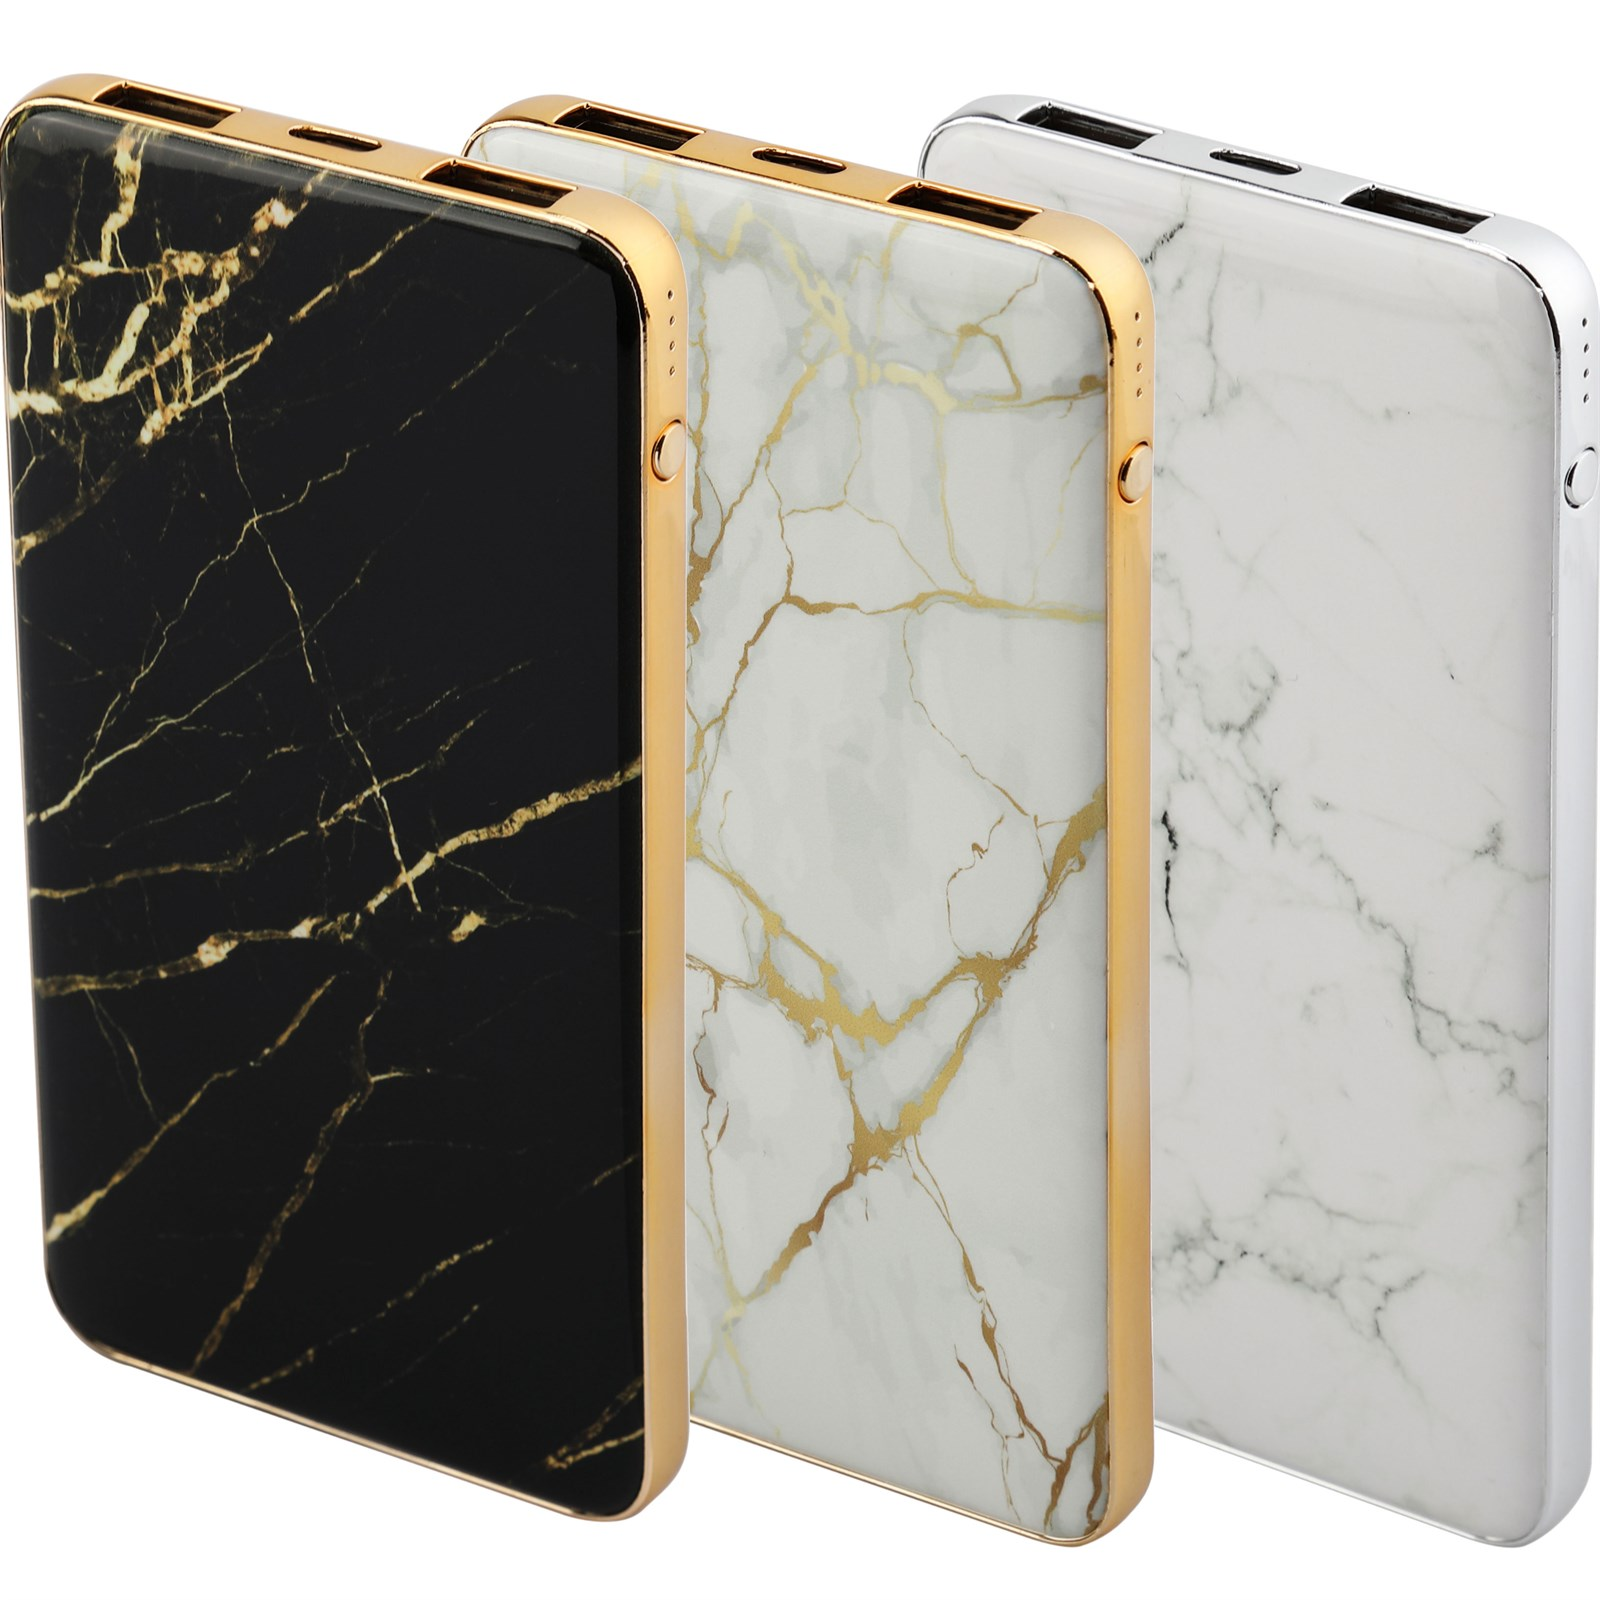 Luxury Design Power Bank